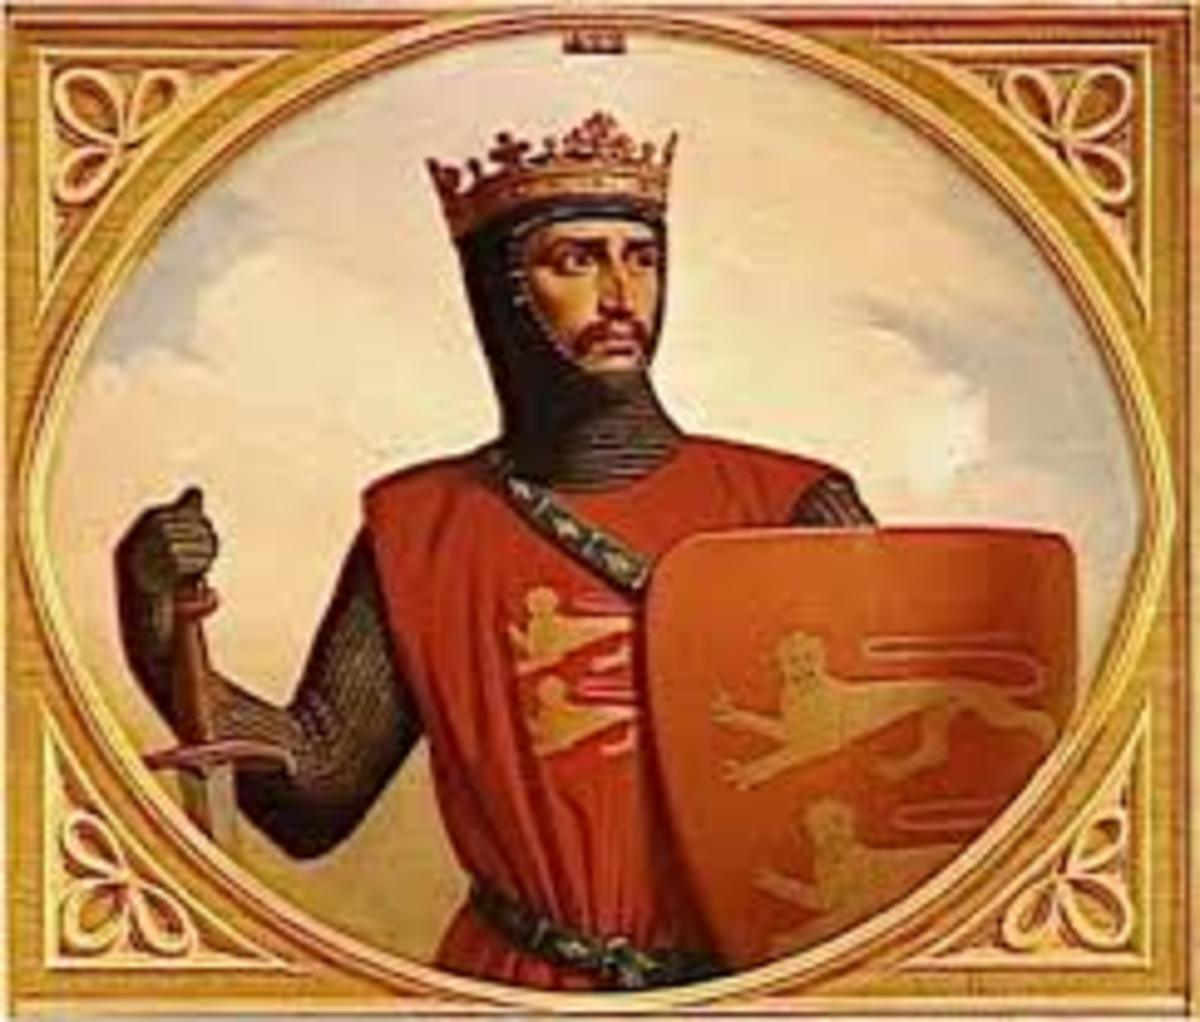 The Norman, Robert Guiscard 1015-1085 he ruled over Monteserico castle, Count of Apulia and Calabria (1057- 1059 and then Duke of Apulia, Calabria and Sicily  1059- 1085 AD.